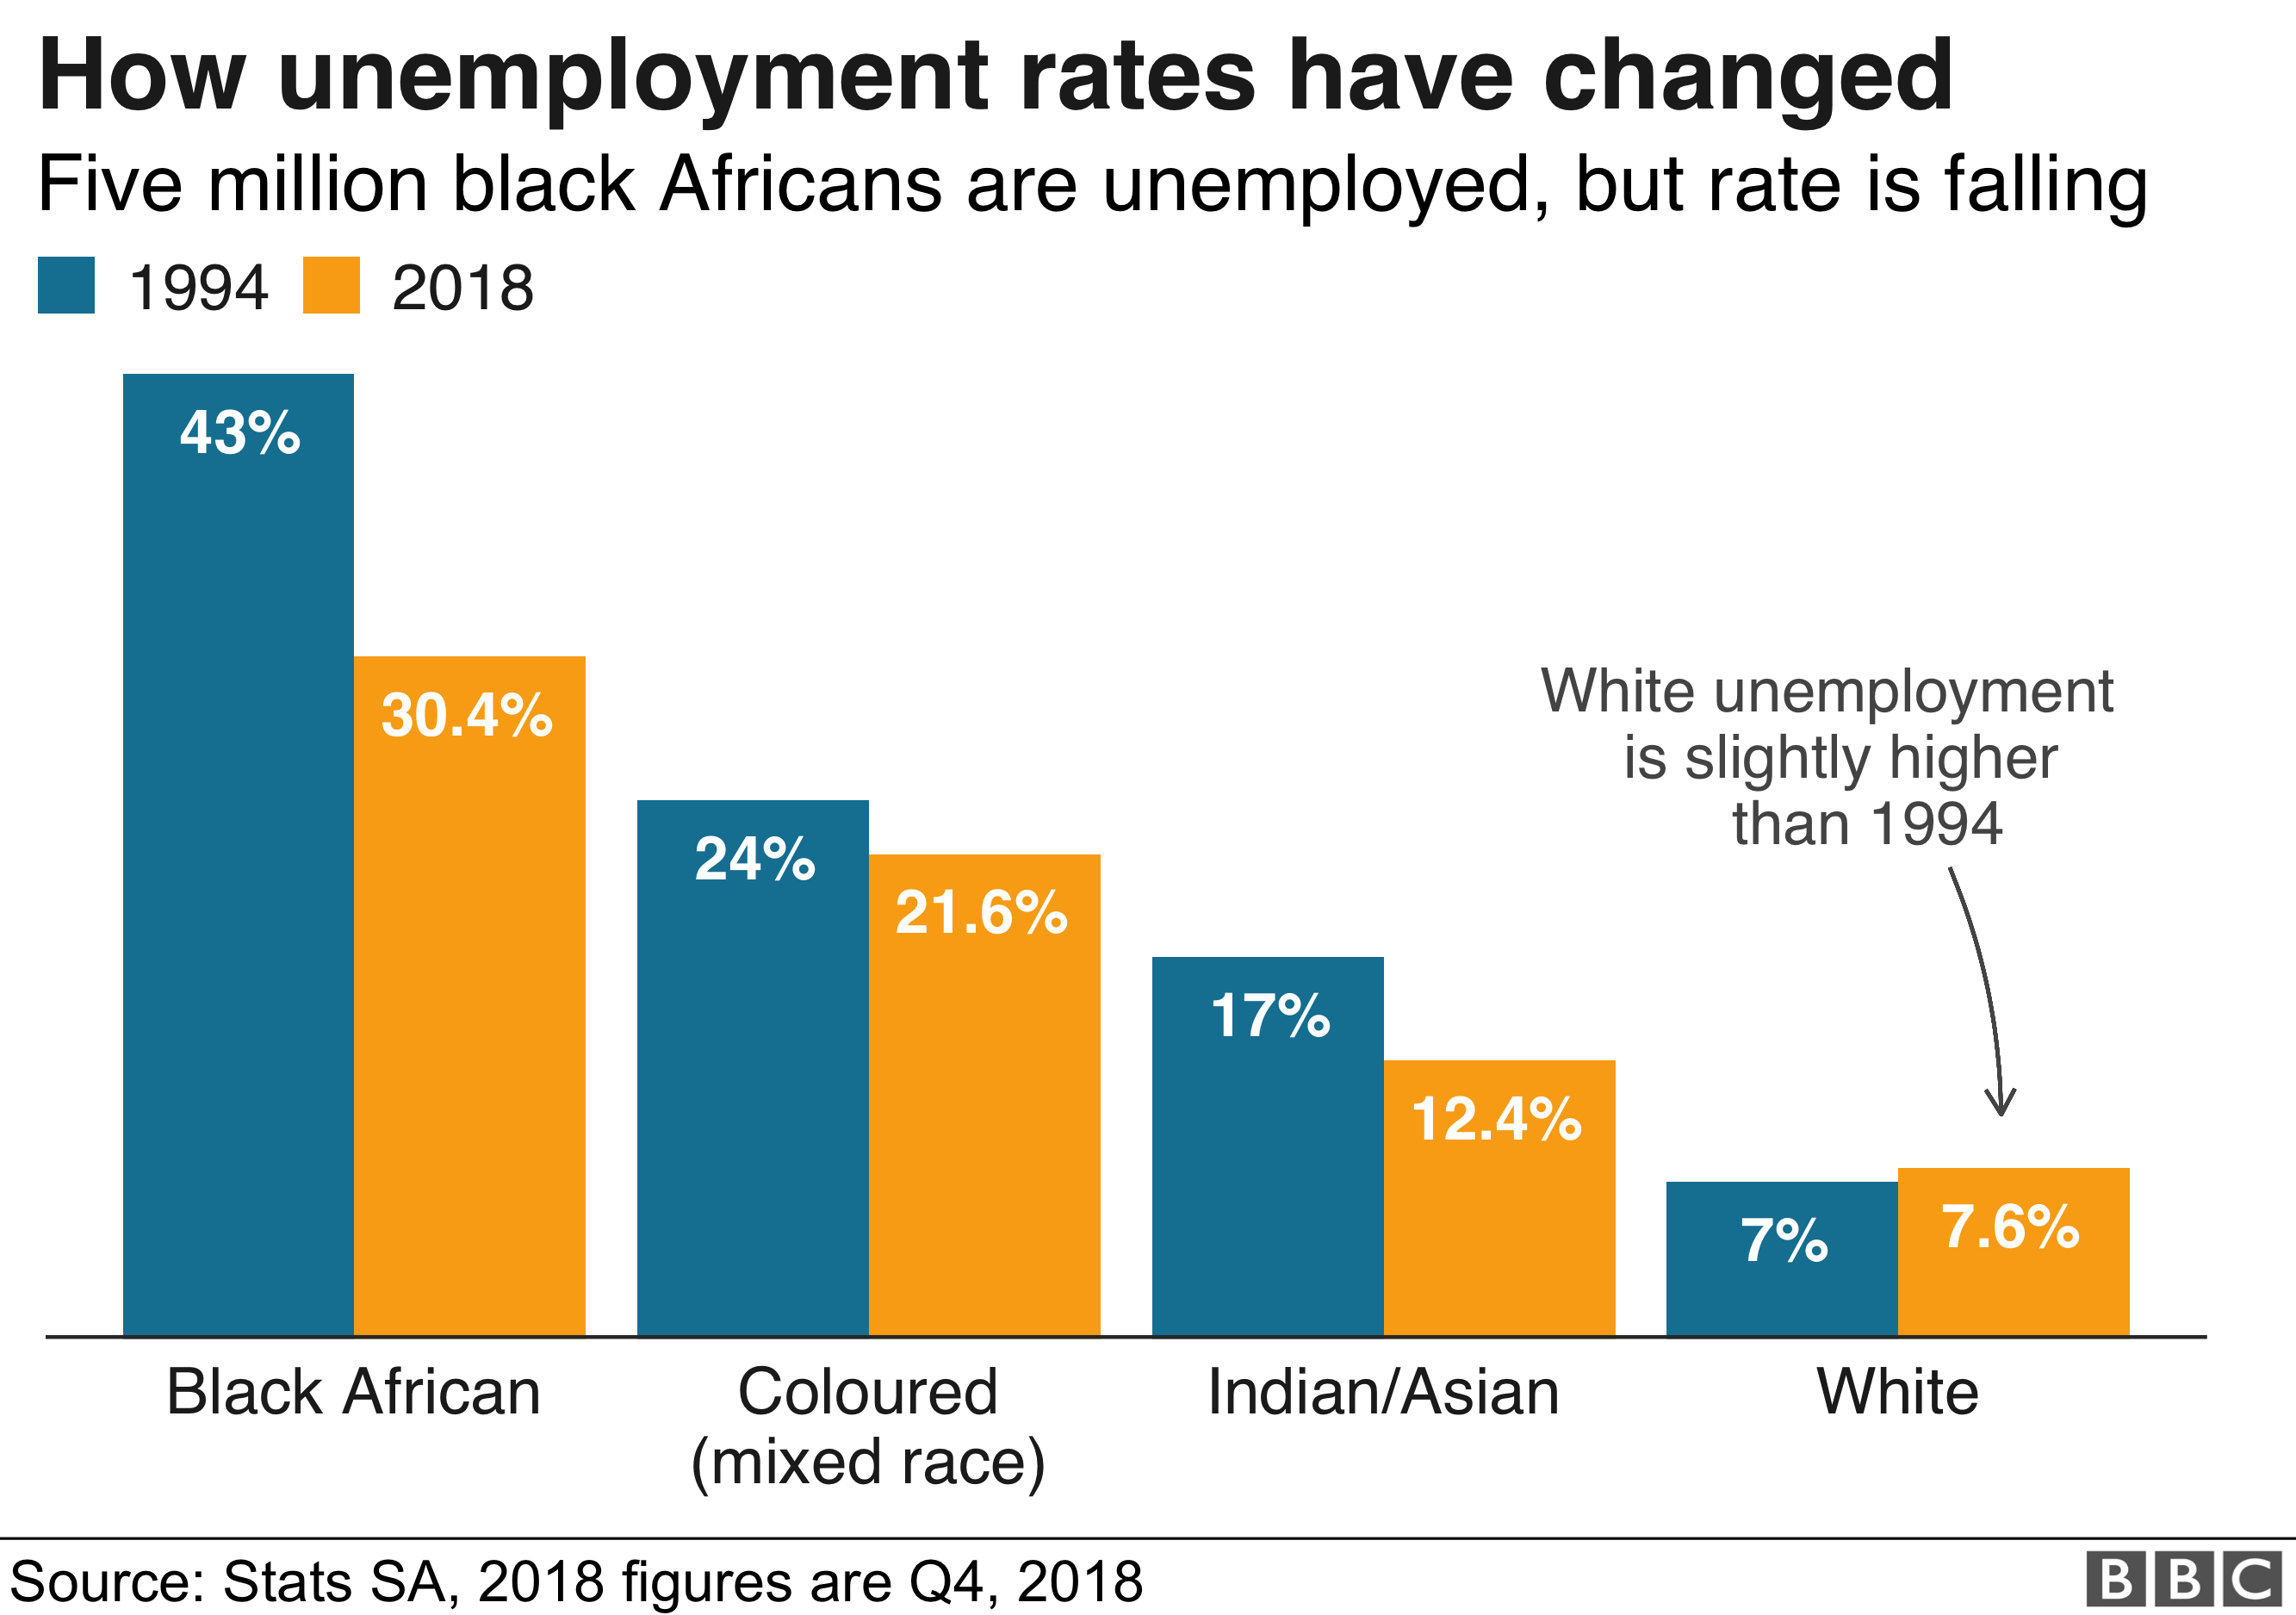 Chart shows black Africans are still hardest hit by unemployment